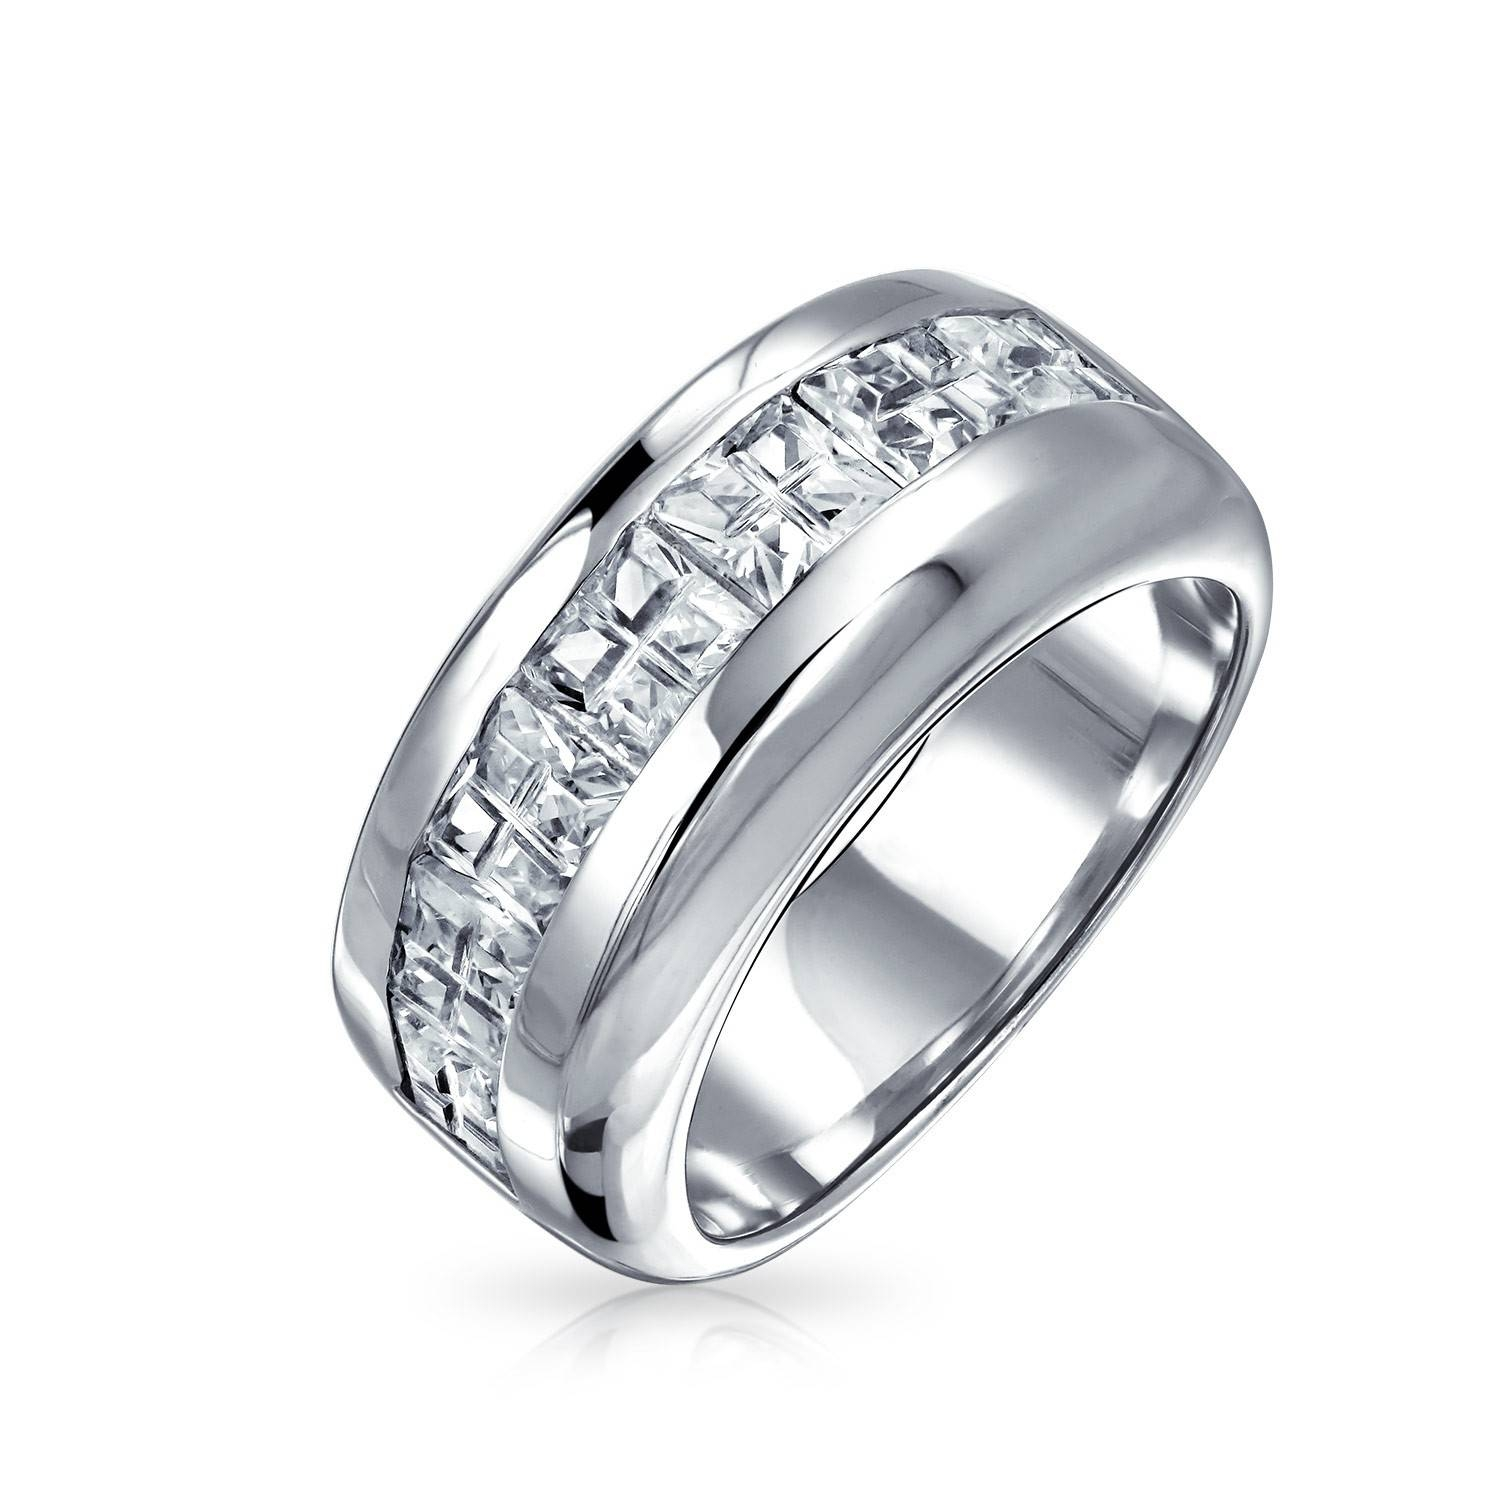 Sterling Silver Wedding Band Invisible Cut Cz Unisex Mens Ring Pertaining To Male Silver Wedding Bands (Gallery 1 of 15)